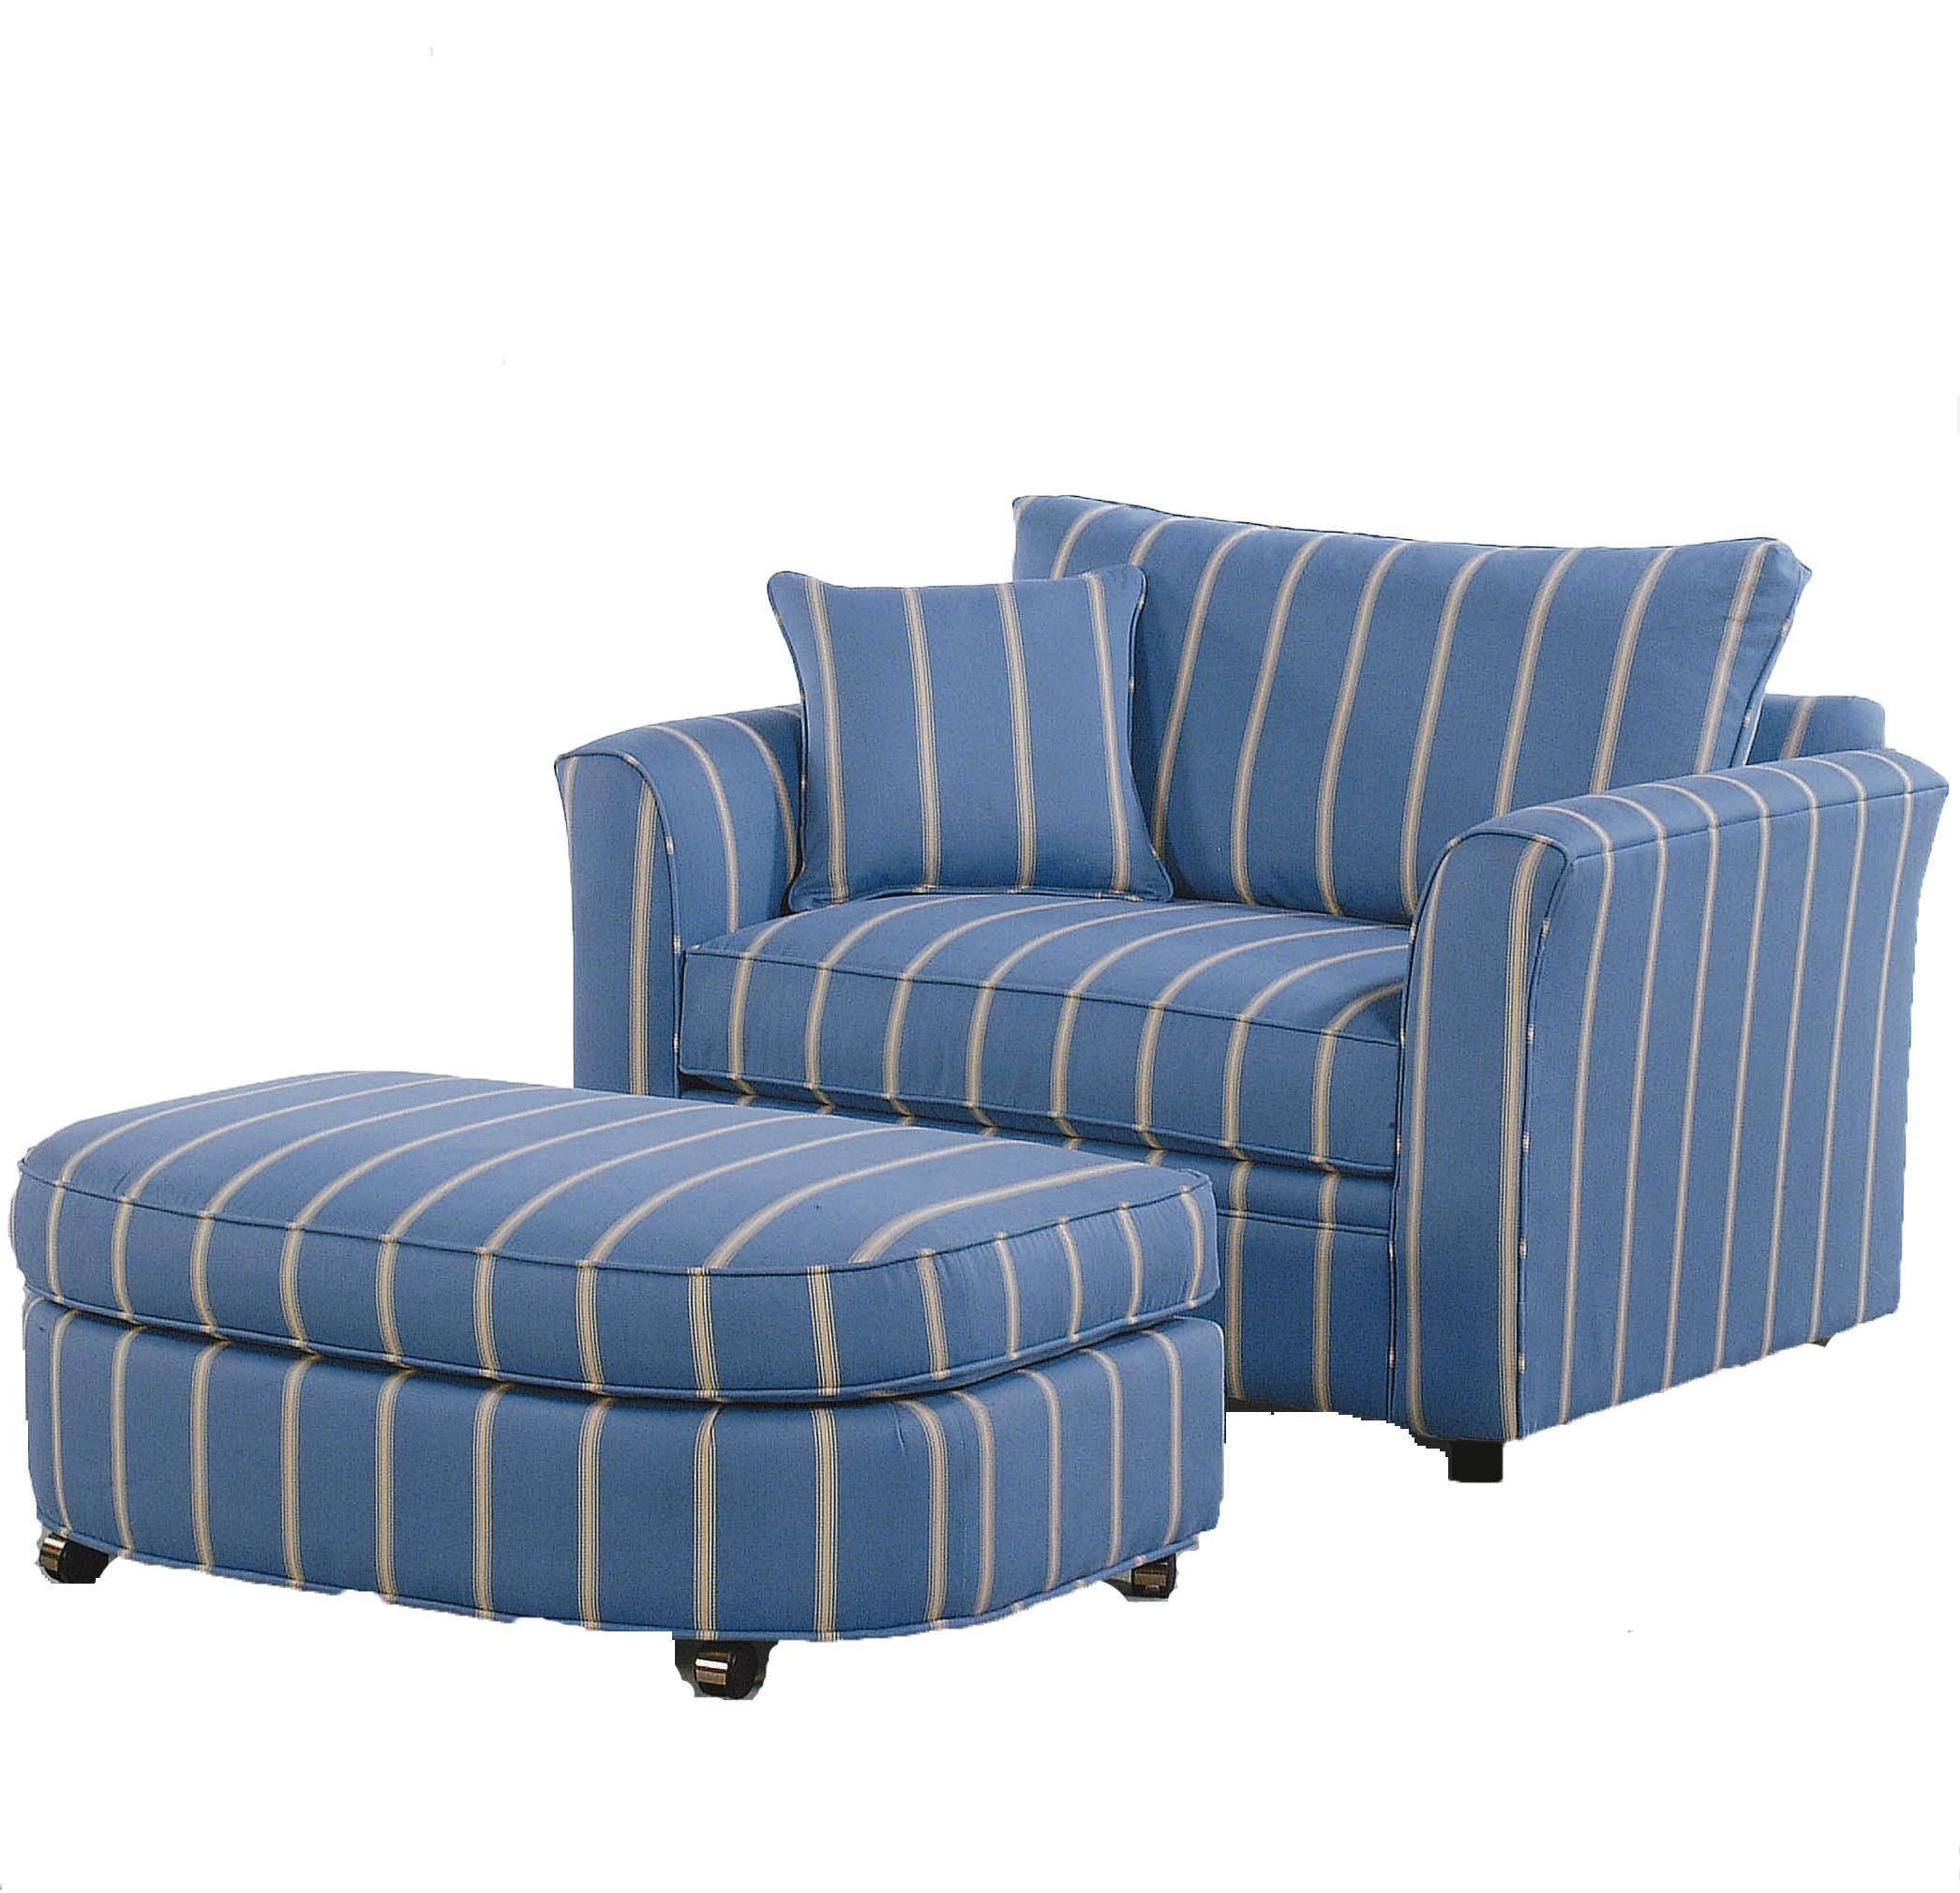 chair and a half sleeper lounge pool chairs vendor 10 bridgeport 560 014 casual with mechanism by